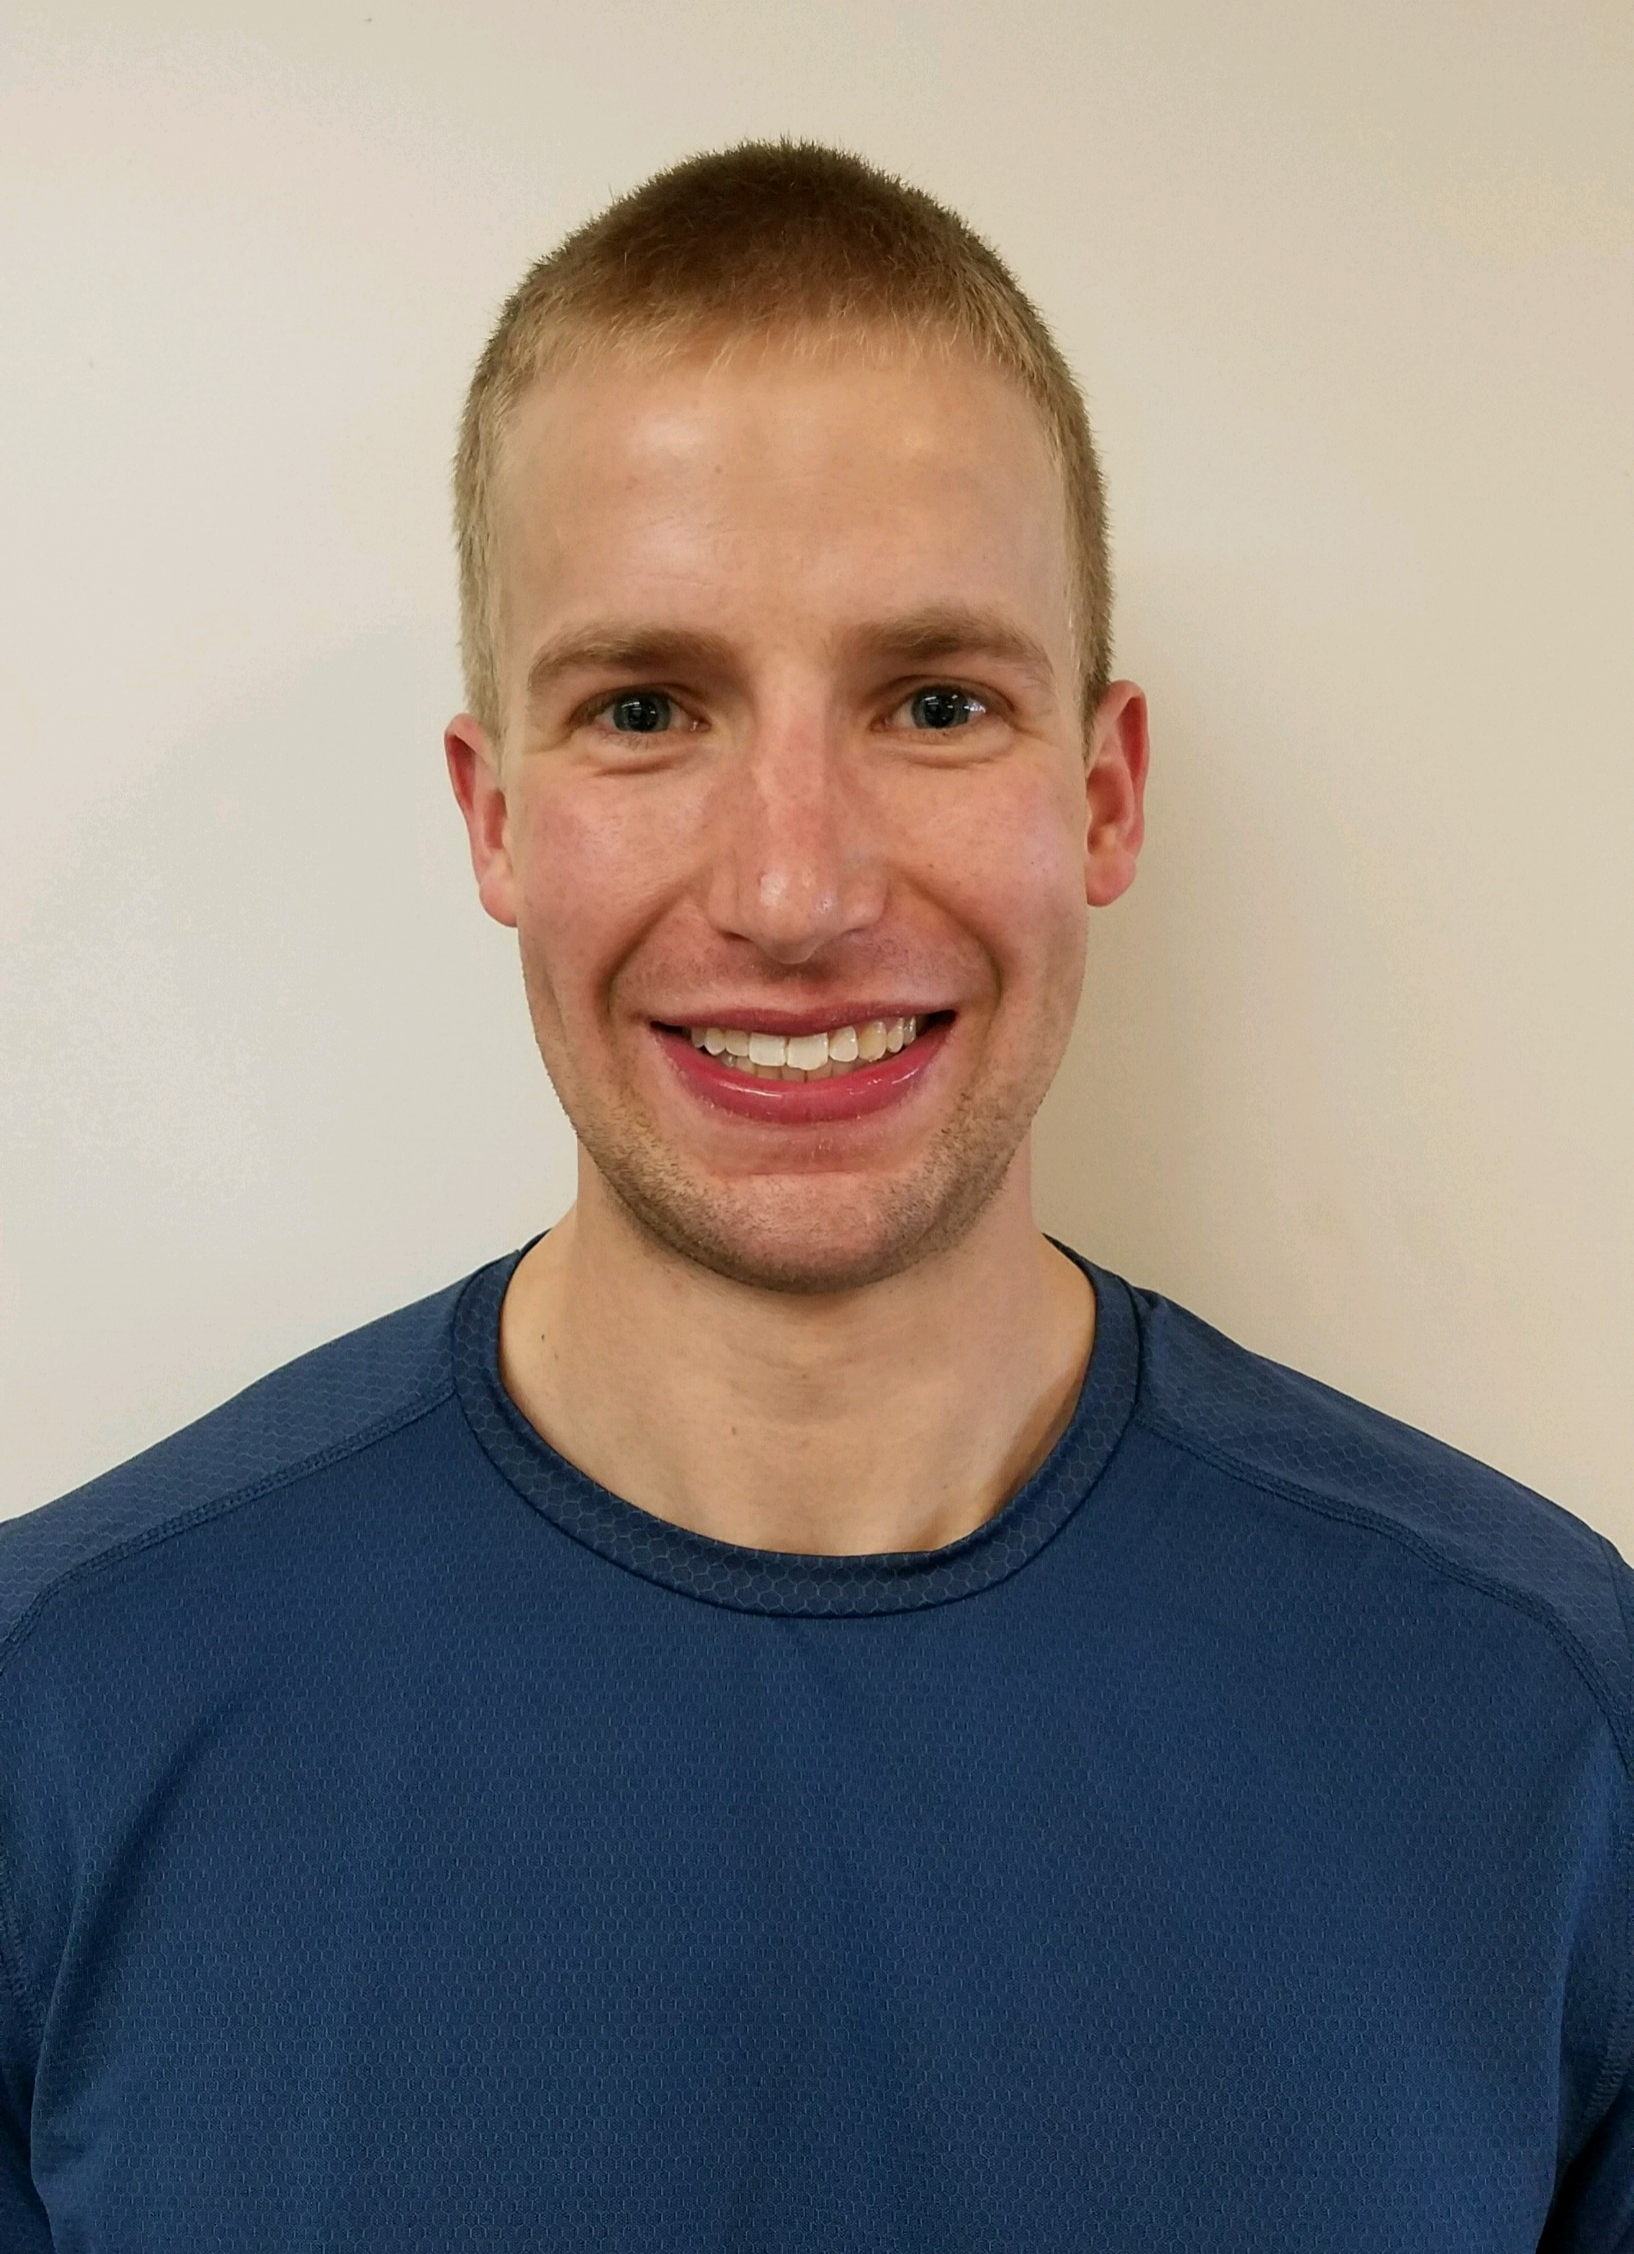 Justin Hesse, AOS in Personal Training, ACE-CPT, PN-1  At ETHOS: Strength & Conditioning Coach, Personal Trainer  Education & Professional: Police Officer, Associates of Occupational Studies in Personal Training, Army National Guard Military Police Sergeant, Precision Nutrition Level 1, Pending Strong First Barbell Certification  Athletic Background: 4 sport HS athlete, Military Police Competitors Challenge (MPCC) National Competition 3rd place  Hobbies: spending quality time with my friends and family, lifting weights, running, snowboarding, motorcycling, playing cards, reading, and listening to music.  Justin's Why: To guide individuals in finding their best self  Quote: Life never gets easier, you just get stronger. It's not a sprint; it's a marathon with no finish line.